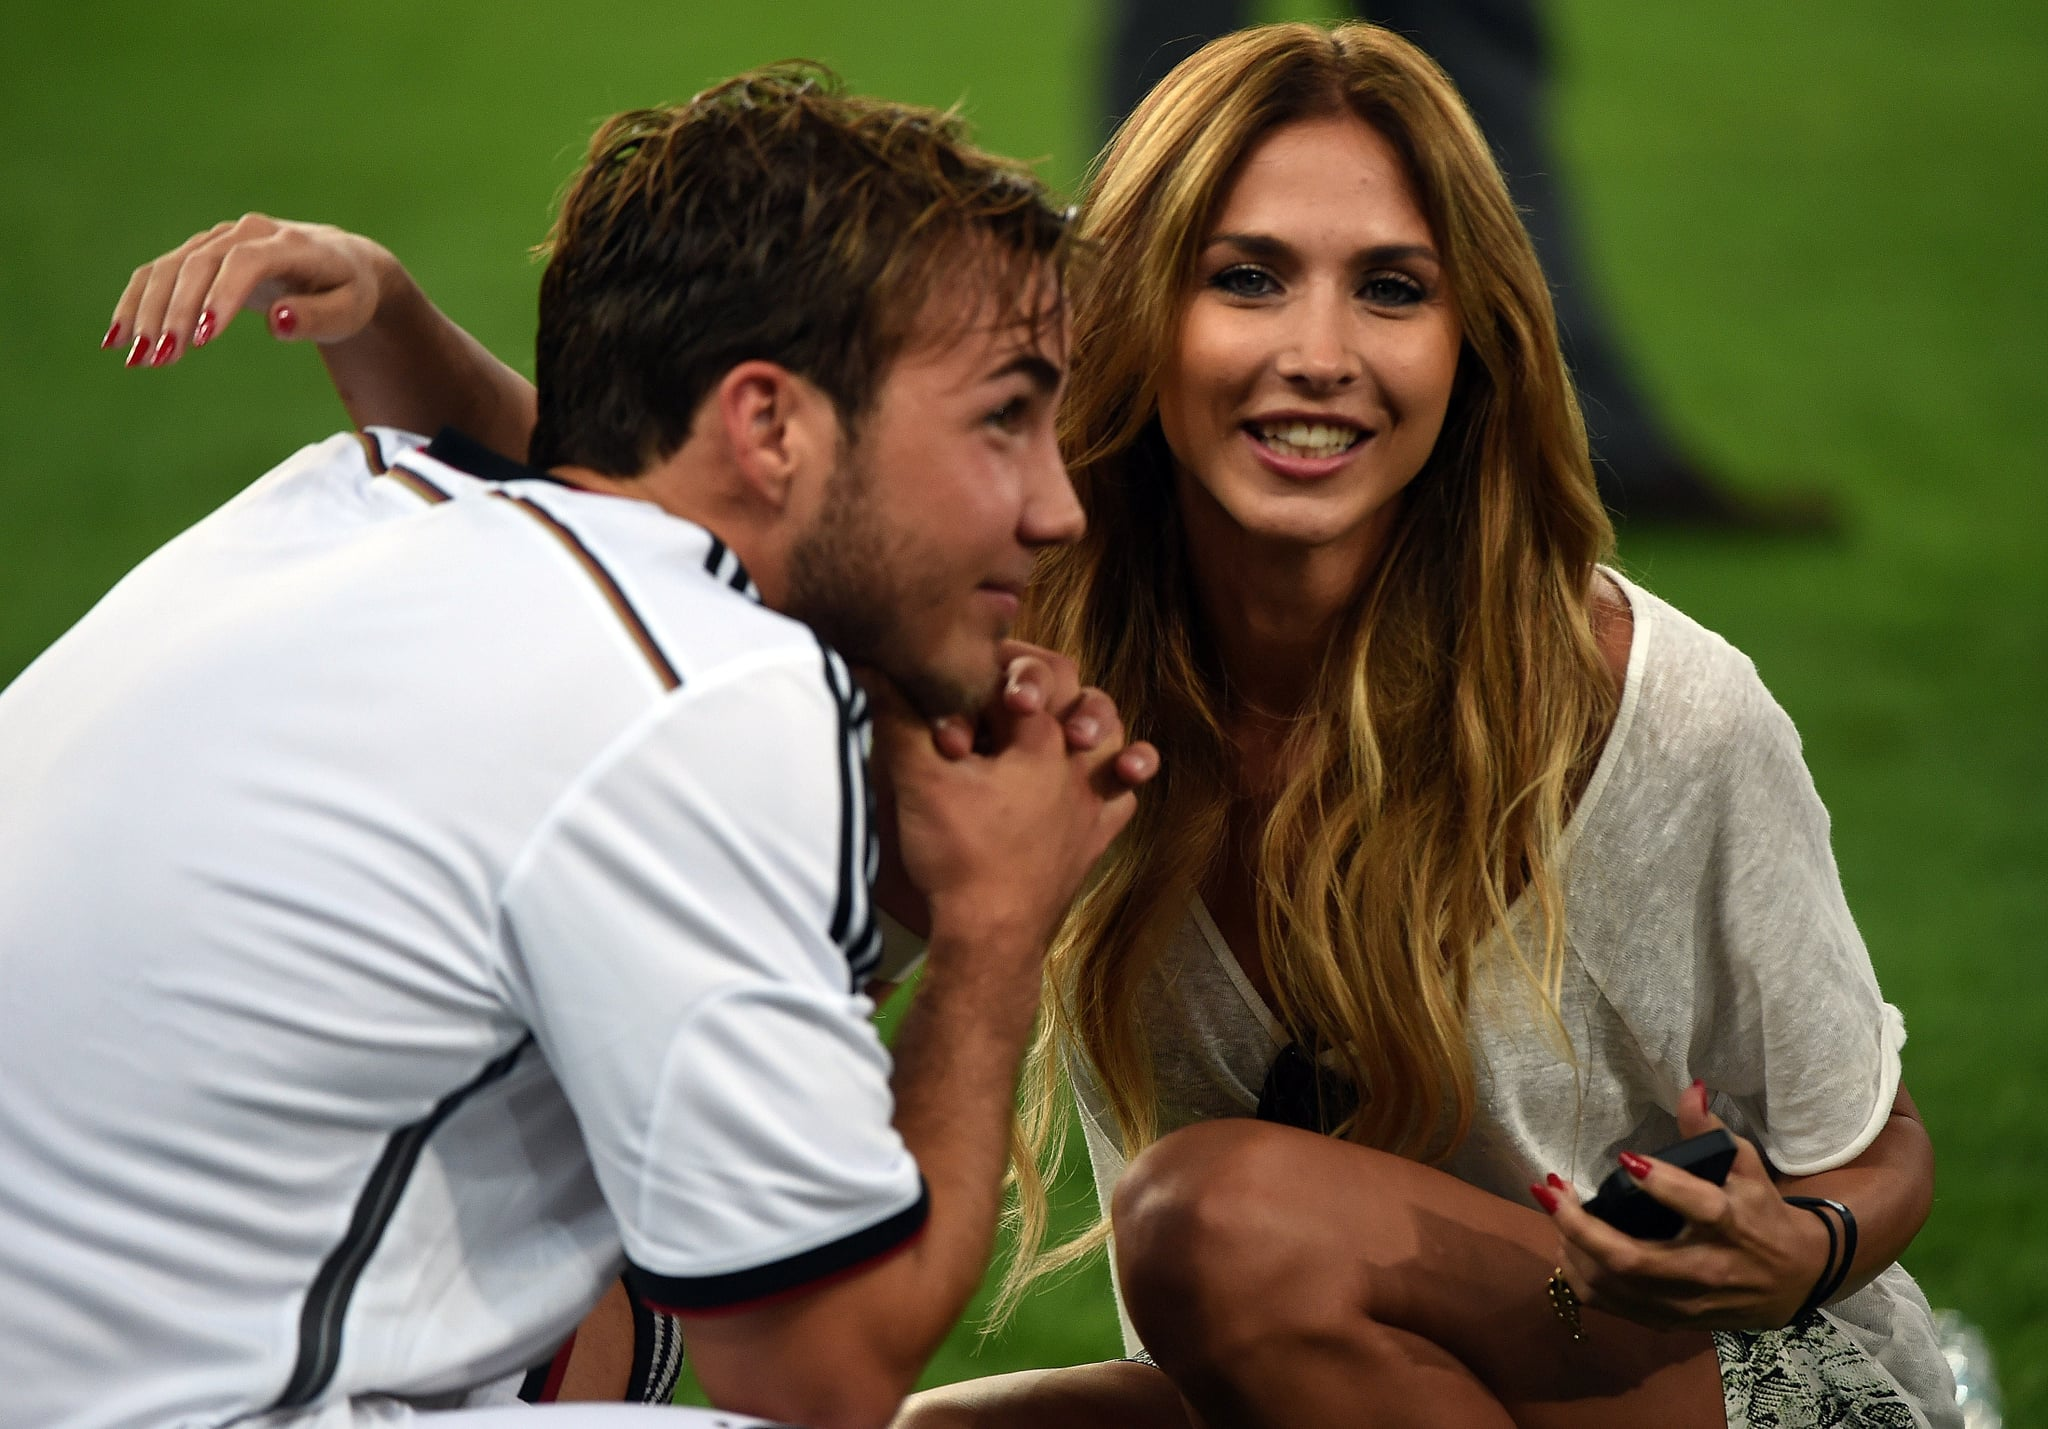 Mario Götze and His Girlfriend Are Having the Best Week Ever